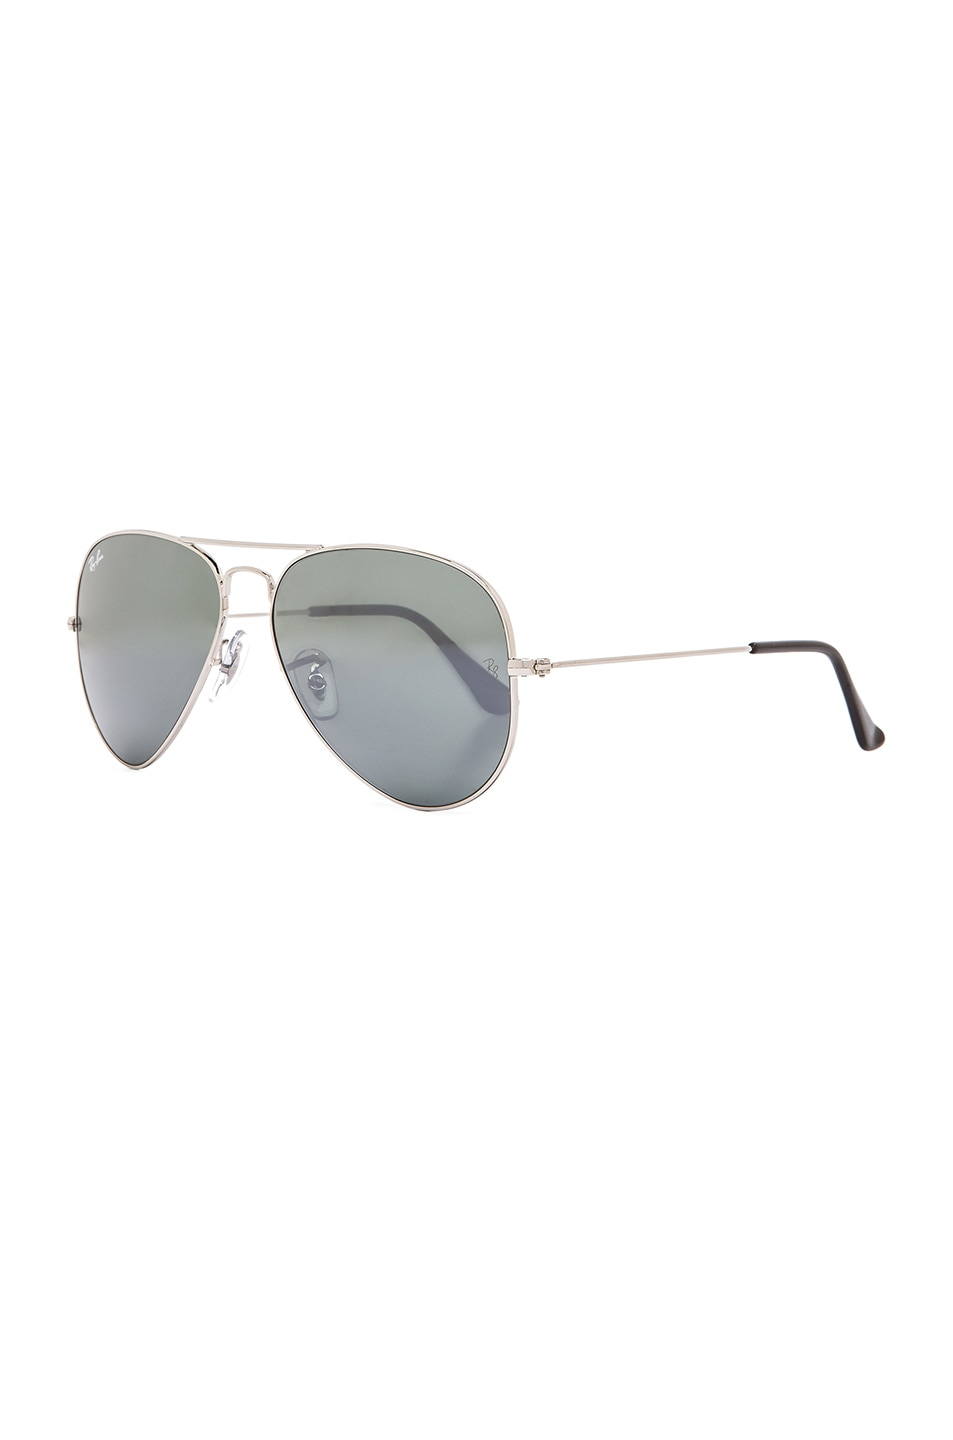 Image 2 of Ray-Ban Aviator Sunglasses in Silver Mirror